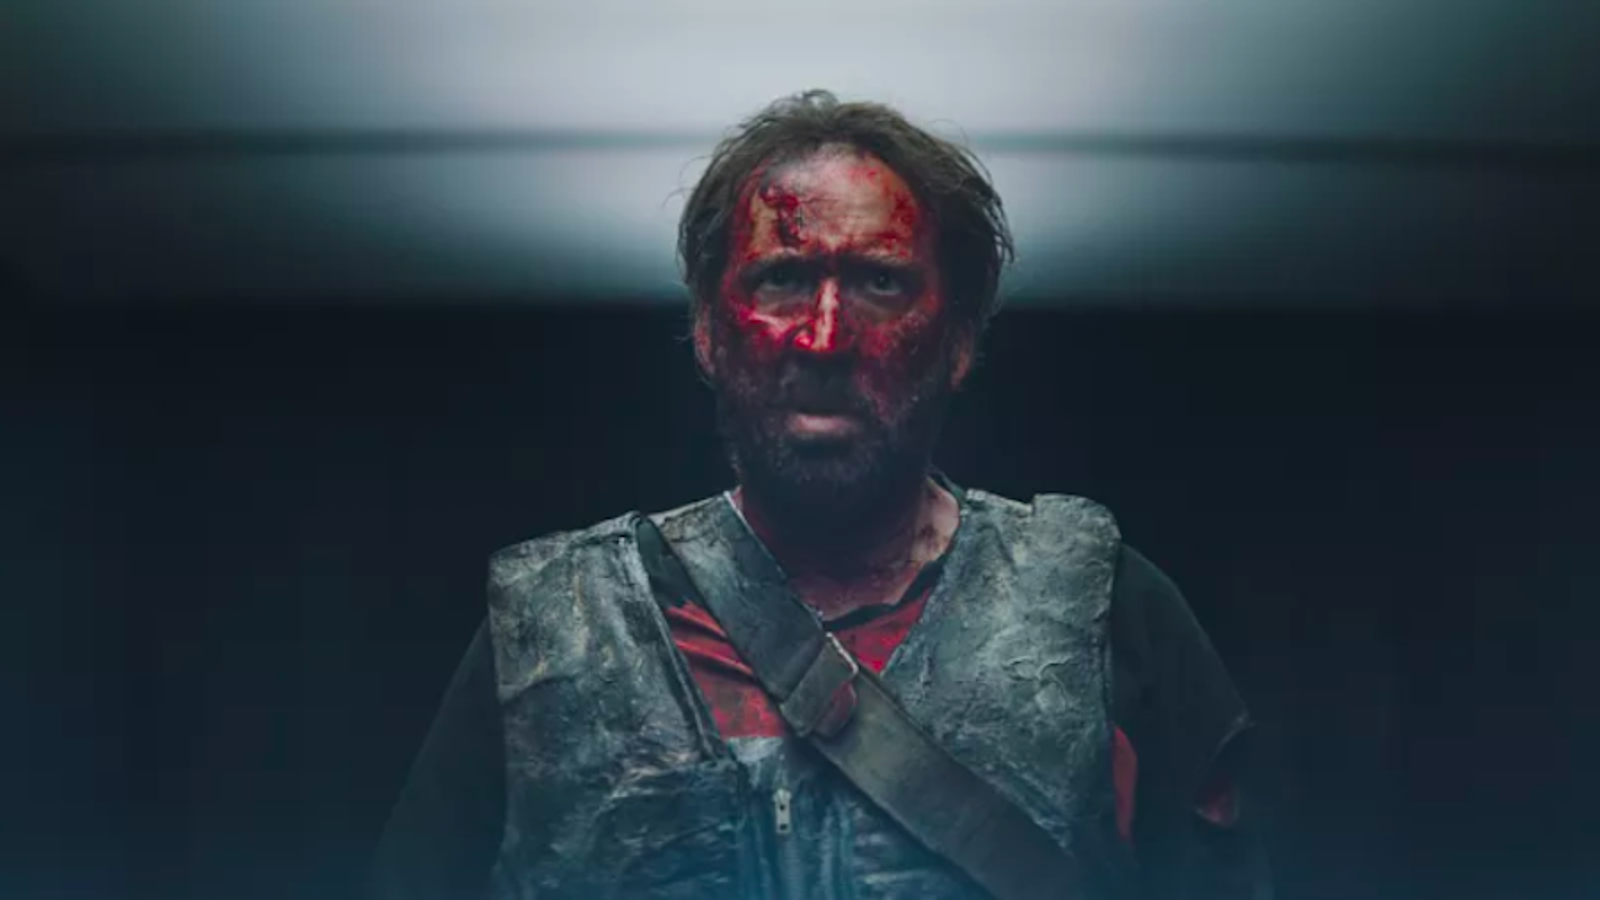 Nicolas Cage on going full Nicolas Cage in Mandy: